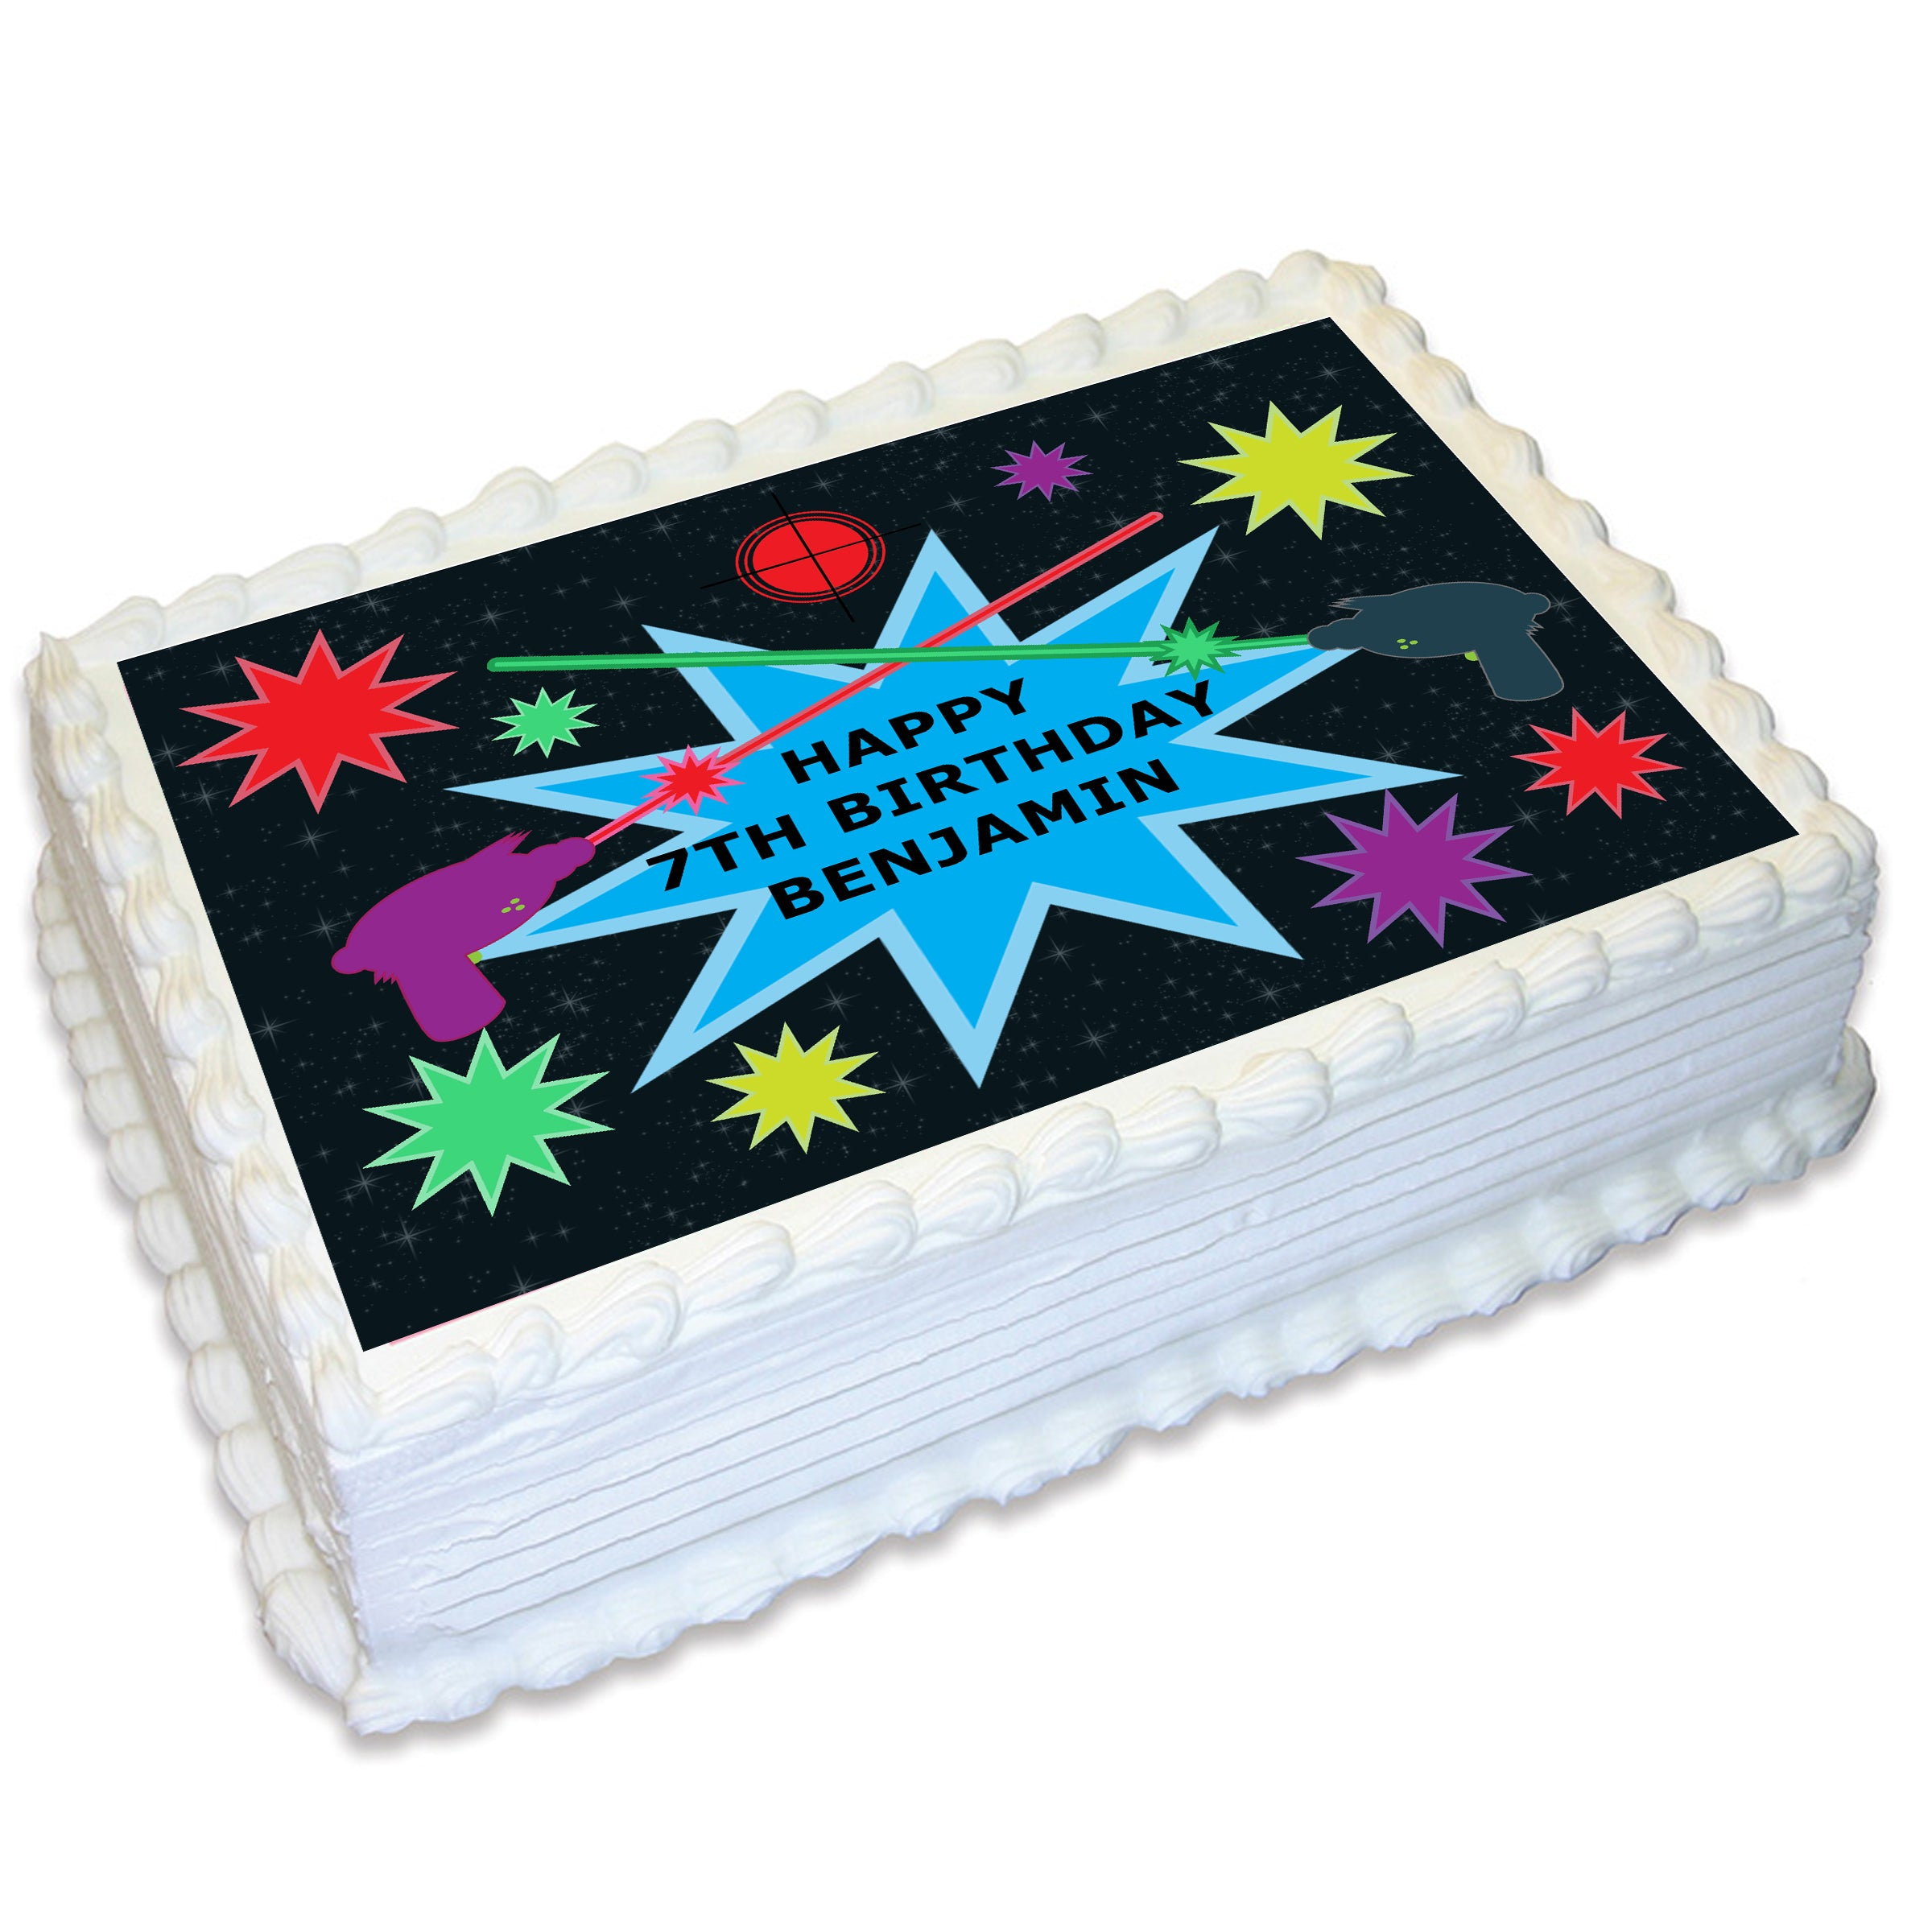 Pleasing Laser Tag Rectangle Edible Cake Topper Deezee Designs Birthday Cards Printable Riciscafe Filternl